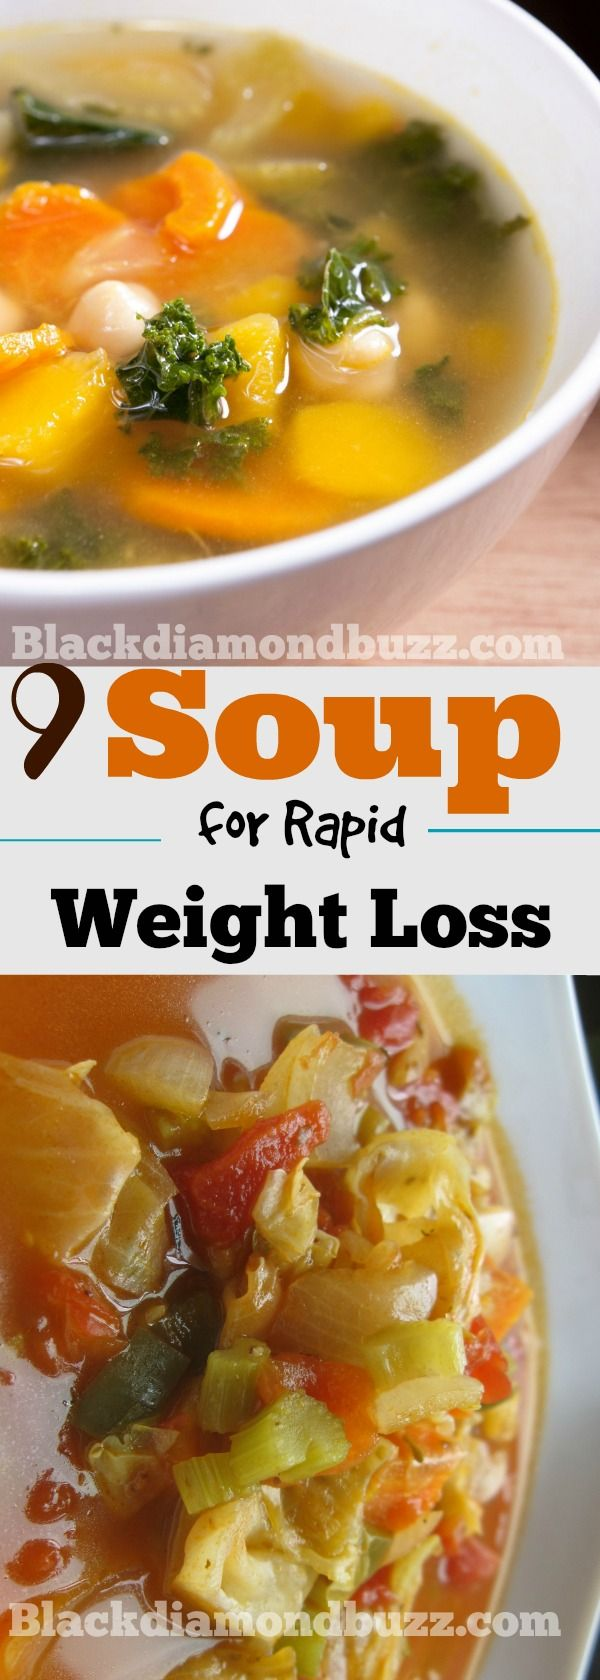 Weight Loss Soup Recipes and 9 Rapid Weight Loss Diet That Work.Rapid weight loss soup diet Magic Weight Loss Soup Indian Soups for Weight Loss Vegetable Soup Diet Recipe Weight Loss- Weight loss soup recipes work effectively by burning all the body fat and detox your gut.Eat these veggies diets for 21 days and lose 10 pounds and more.#health